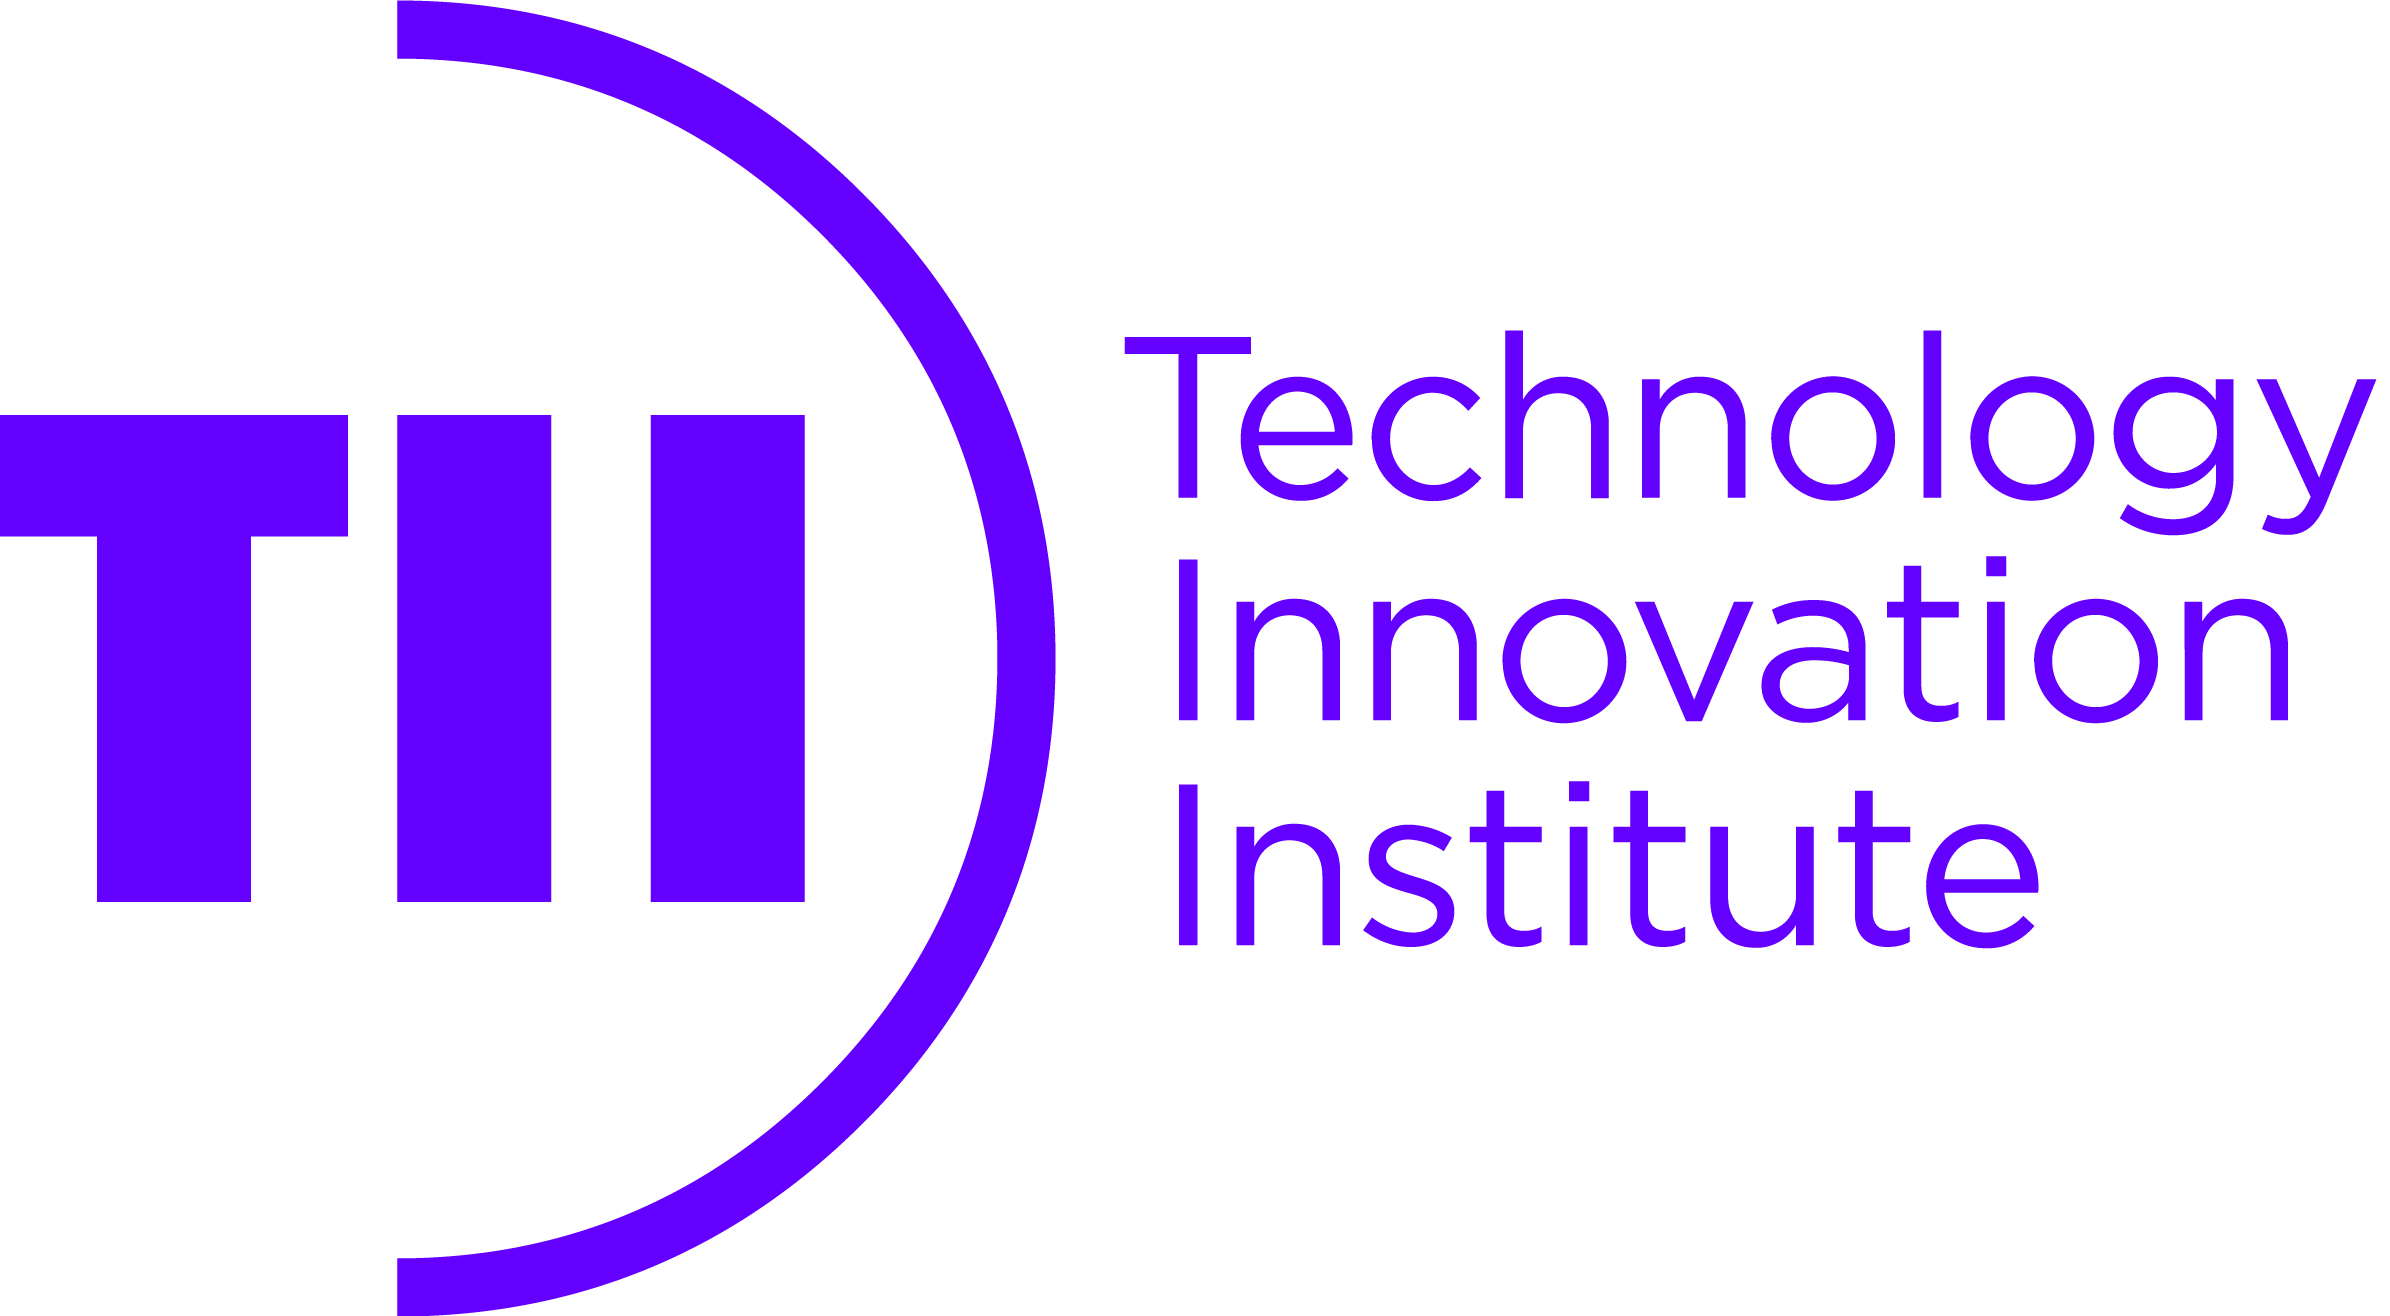 Technology Innovation Institute